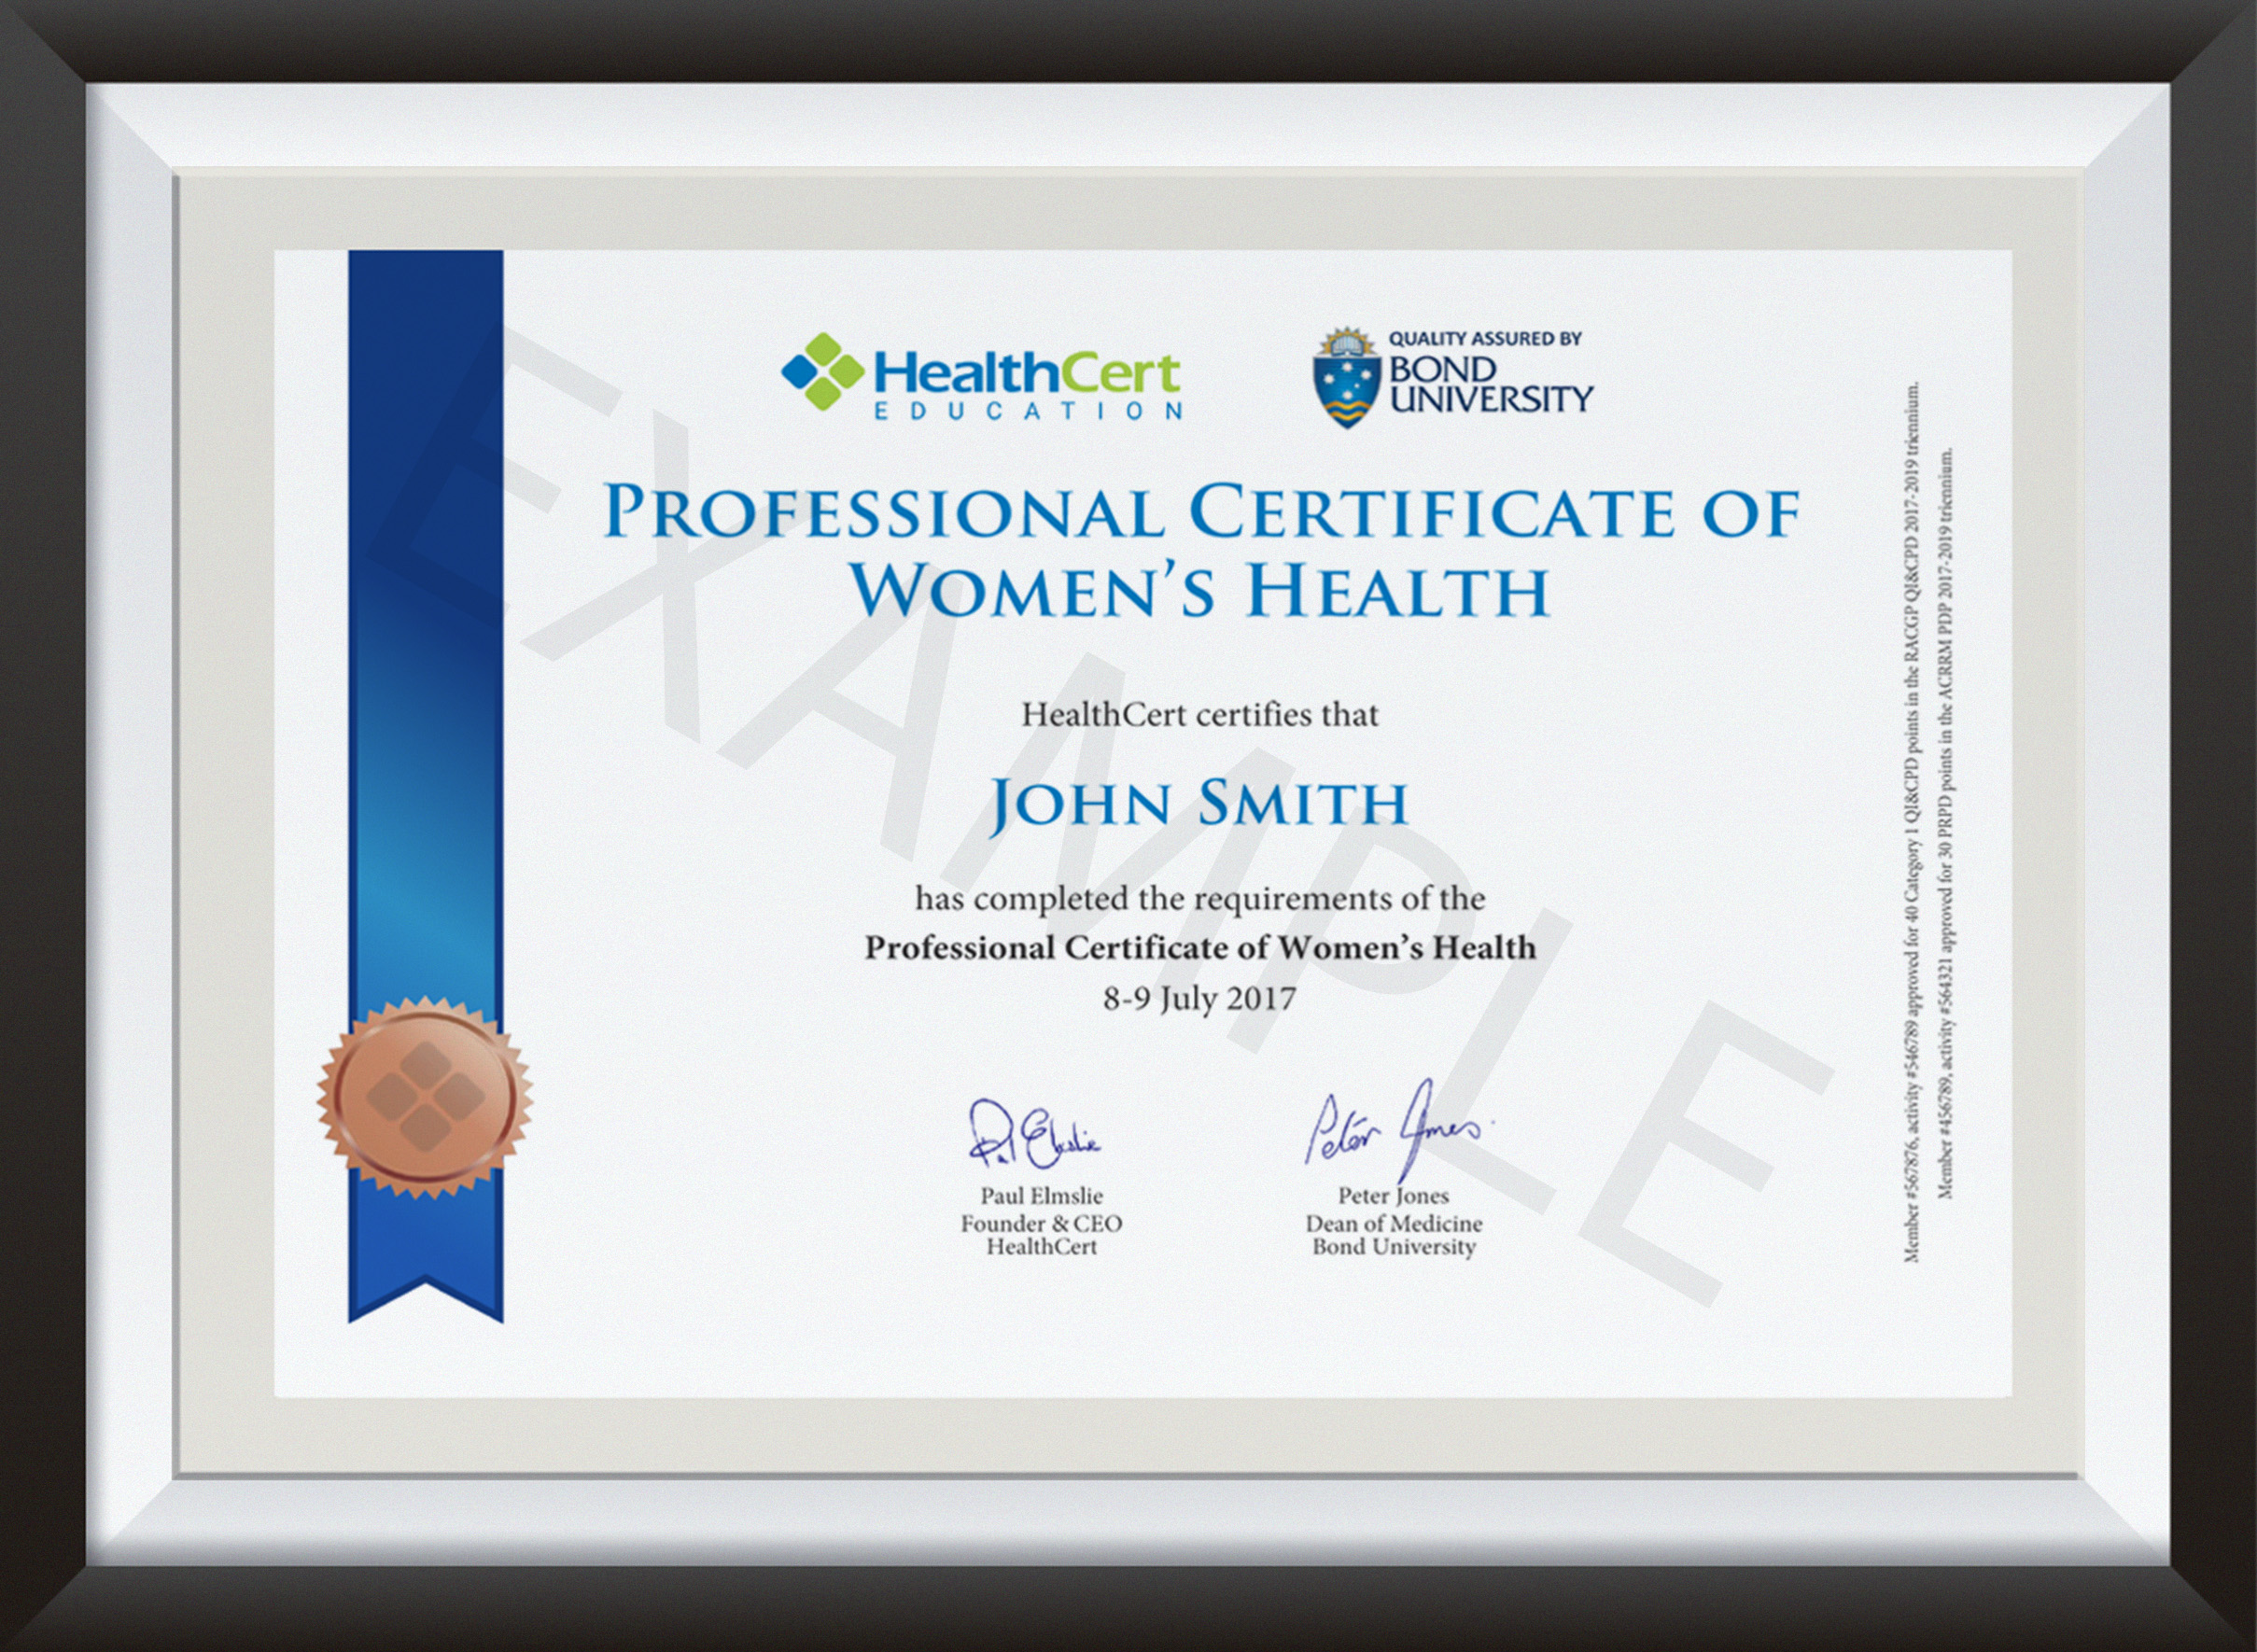 Professional Certificate of Women's Health